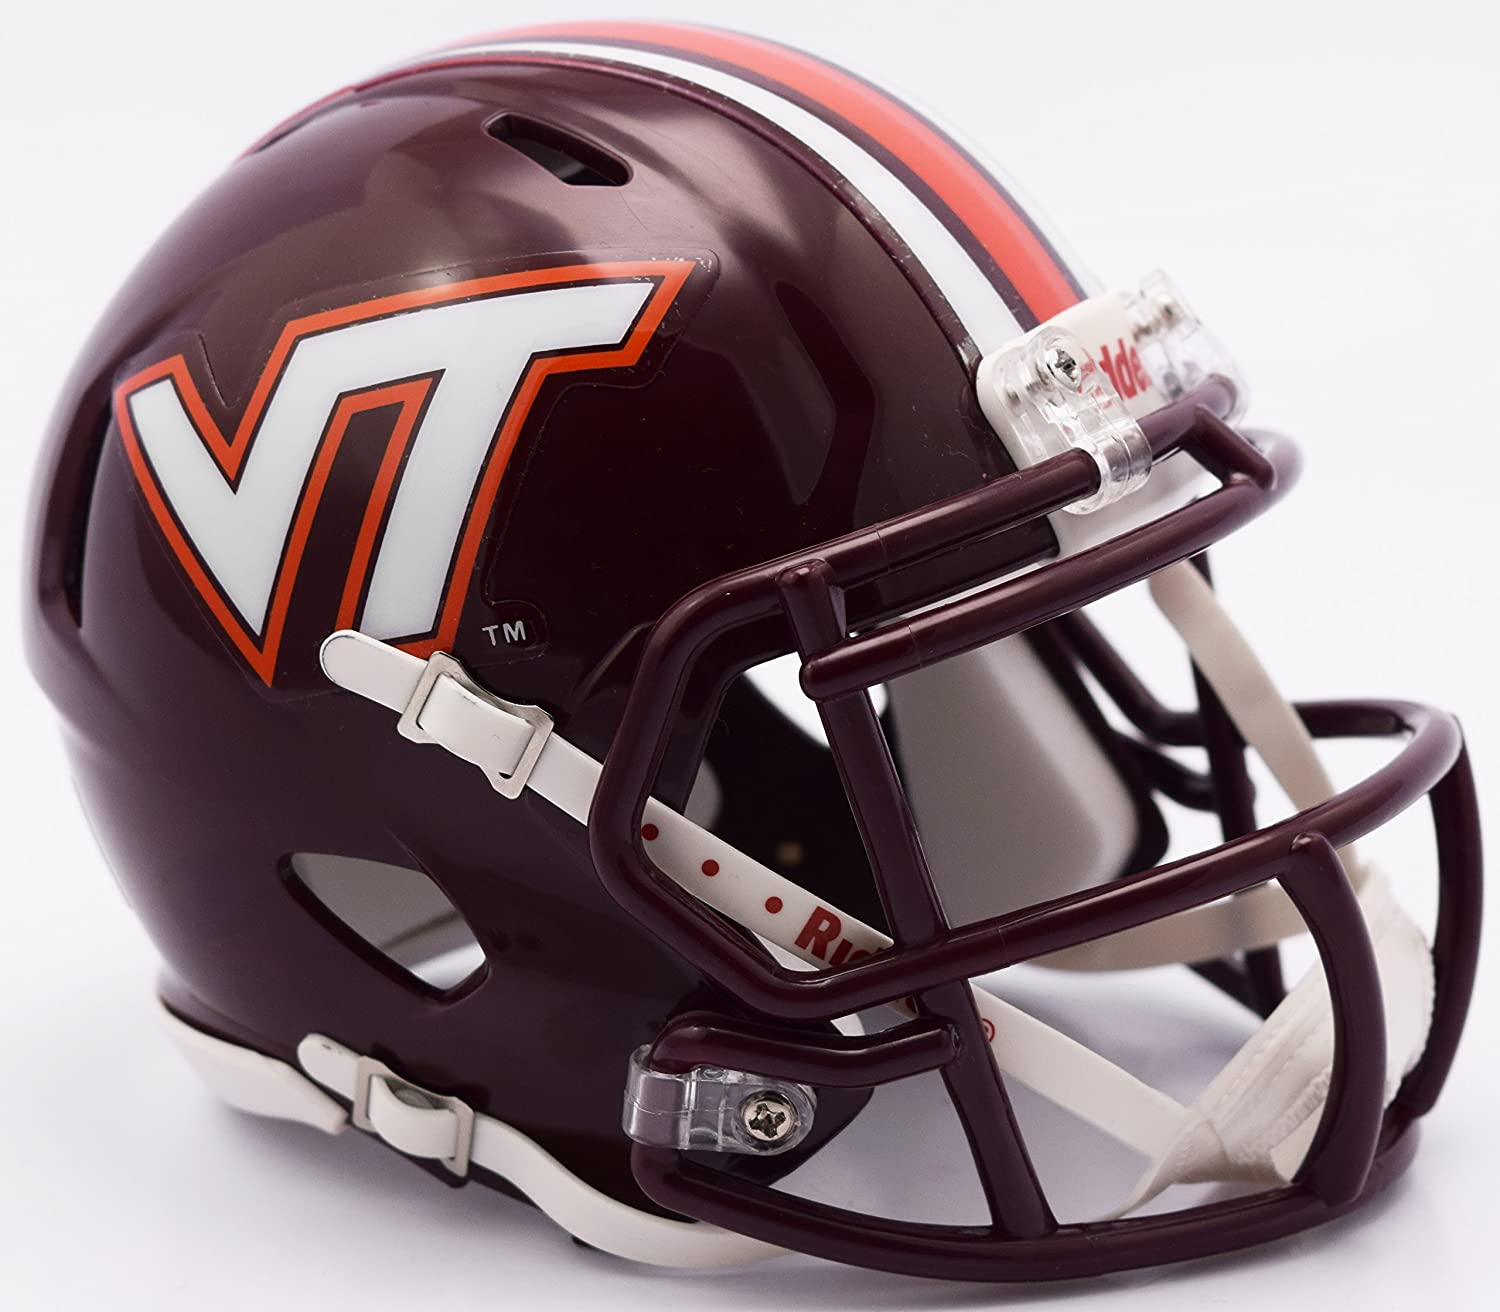 Virginia Tech Hokies Riddell Speed Mini Football Helmet - New in Riddell Box